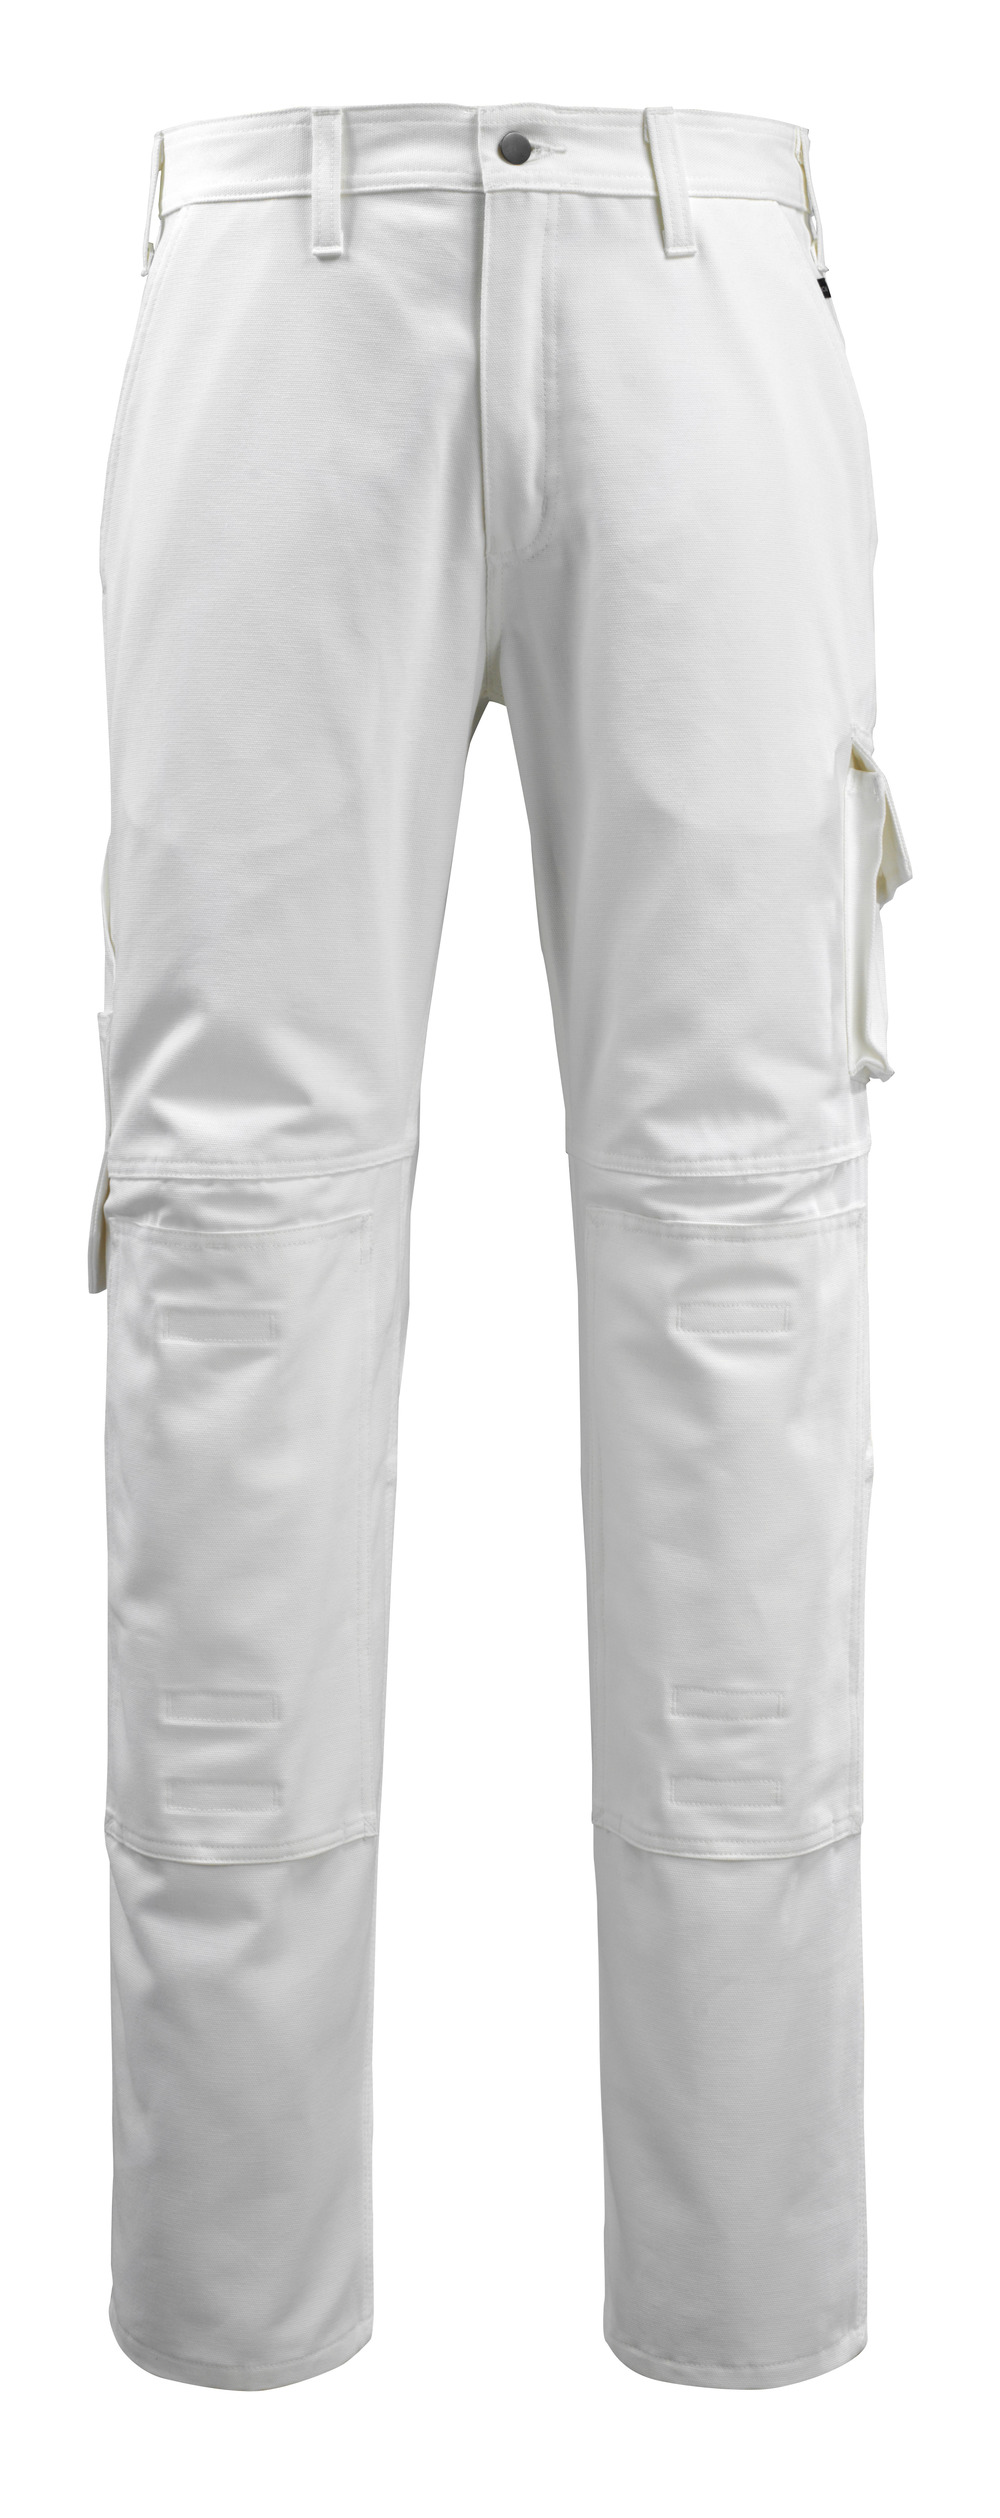 14579-197-06 Trousers with kneepad pockets - white